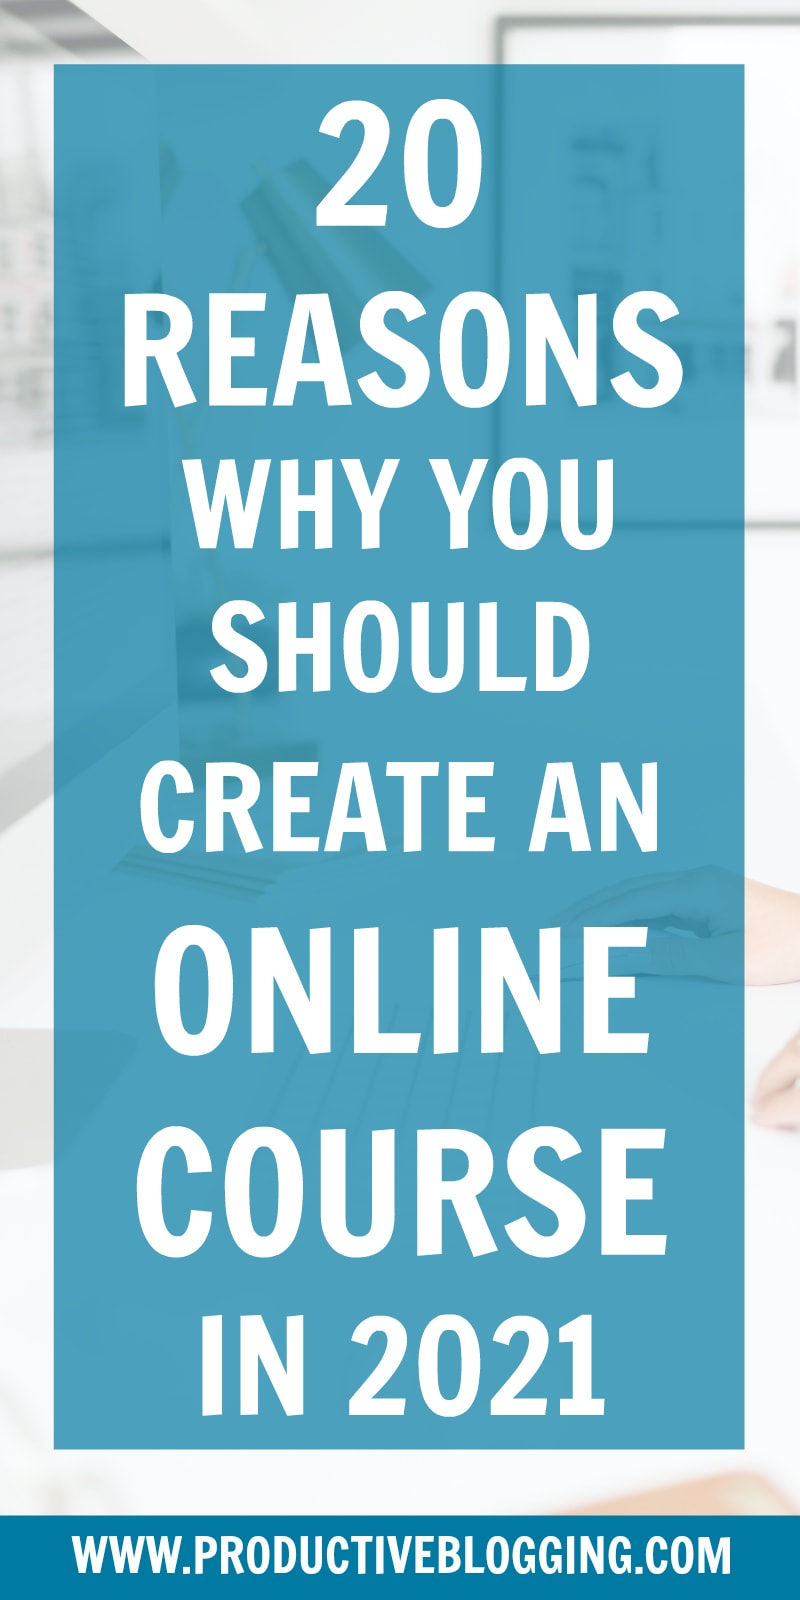 Is 'create an online course' on your to do list for this year? If not, it certainly should be – here are 20 reasons why you should create an online course in 2021. #onlinecourse #digitalcourse #coursecreation #onlinecoursecreation #digitalcoursecreation #digitalproduct #teachable #coursecreator #digitallearning #digitaleducator #bloggingformoney #makemoneyblogging #howdoblogsmakemoney #passiveincome #treatitlikeabusiness #businessblogging #bizblogging #bloggingtips #productiveblogging